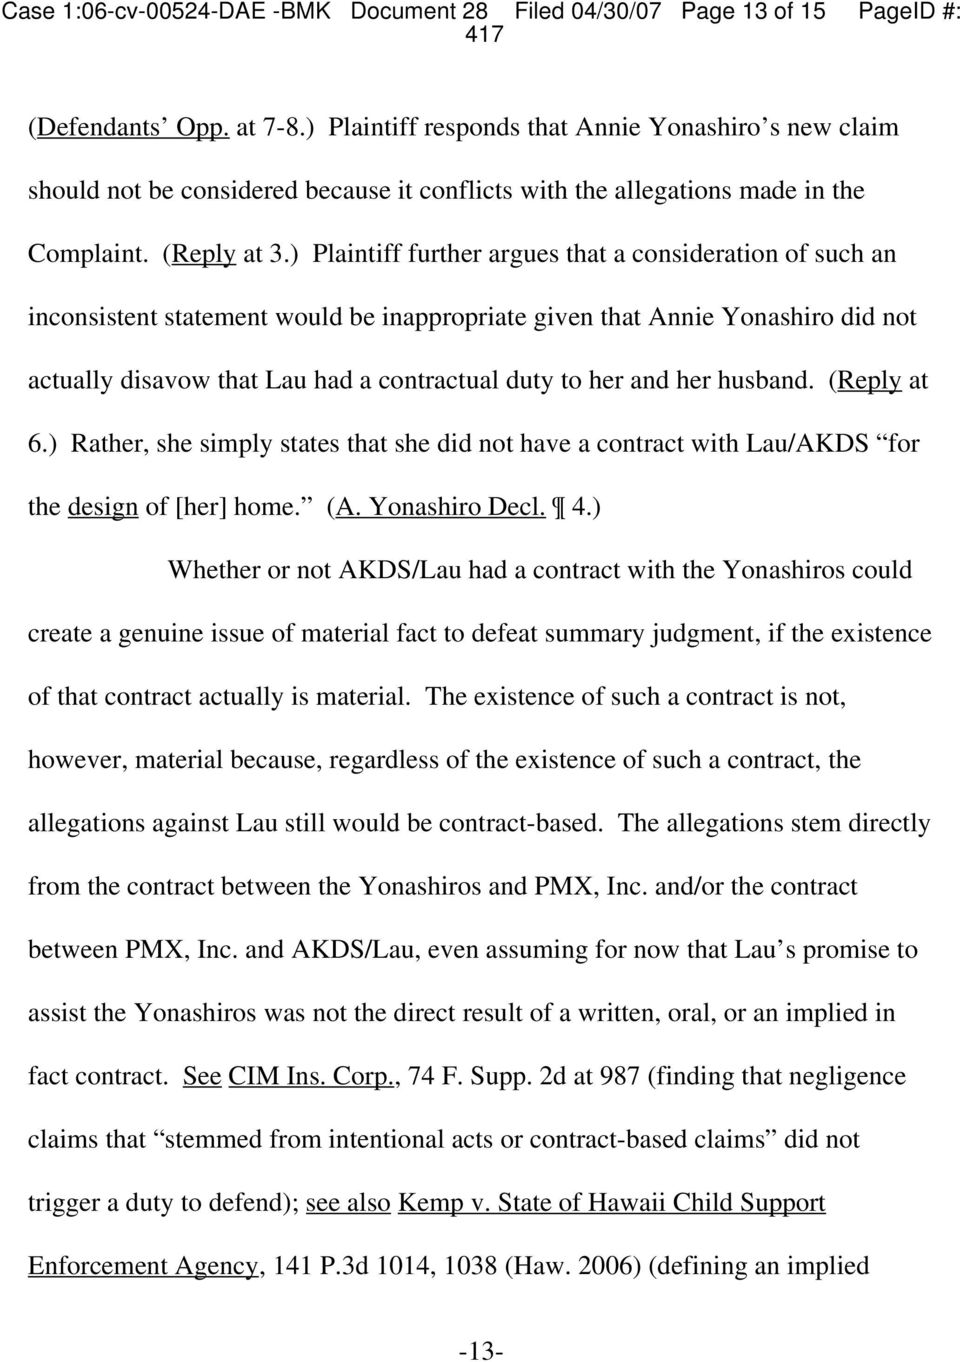 Plaintiff further argues that a consideration of such an inconsistent statement would be inappropriate given that Annie Yonashiro did not actually disavow that Lau had a contractual duty to her and